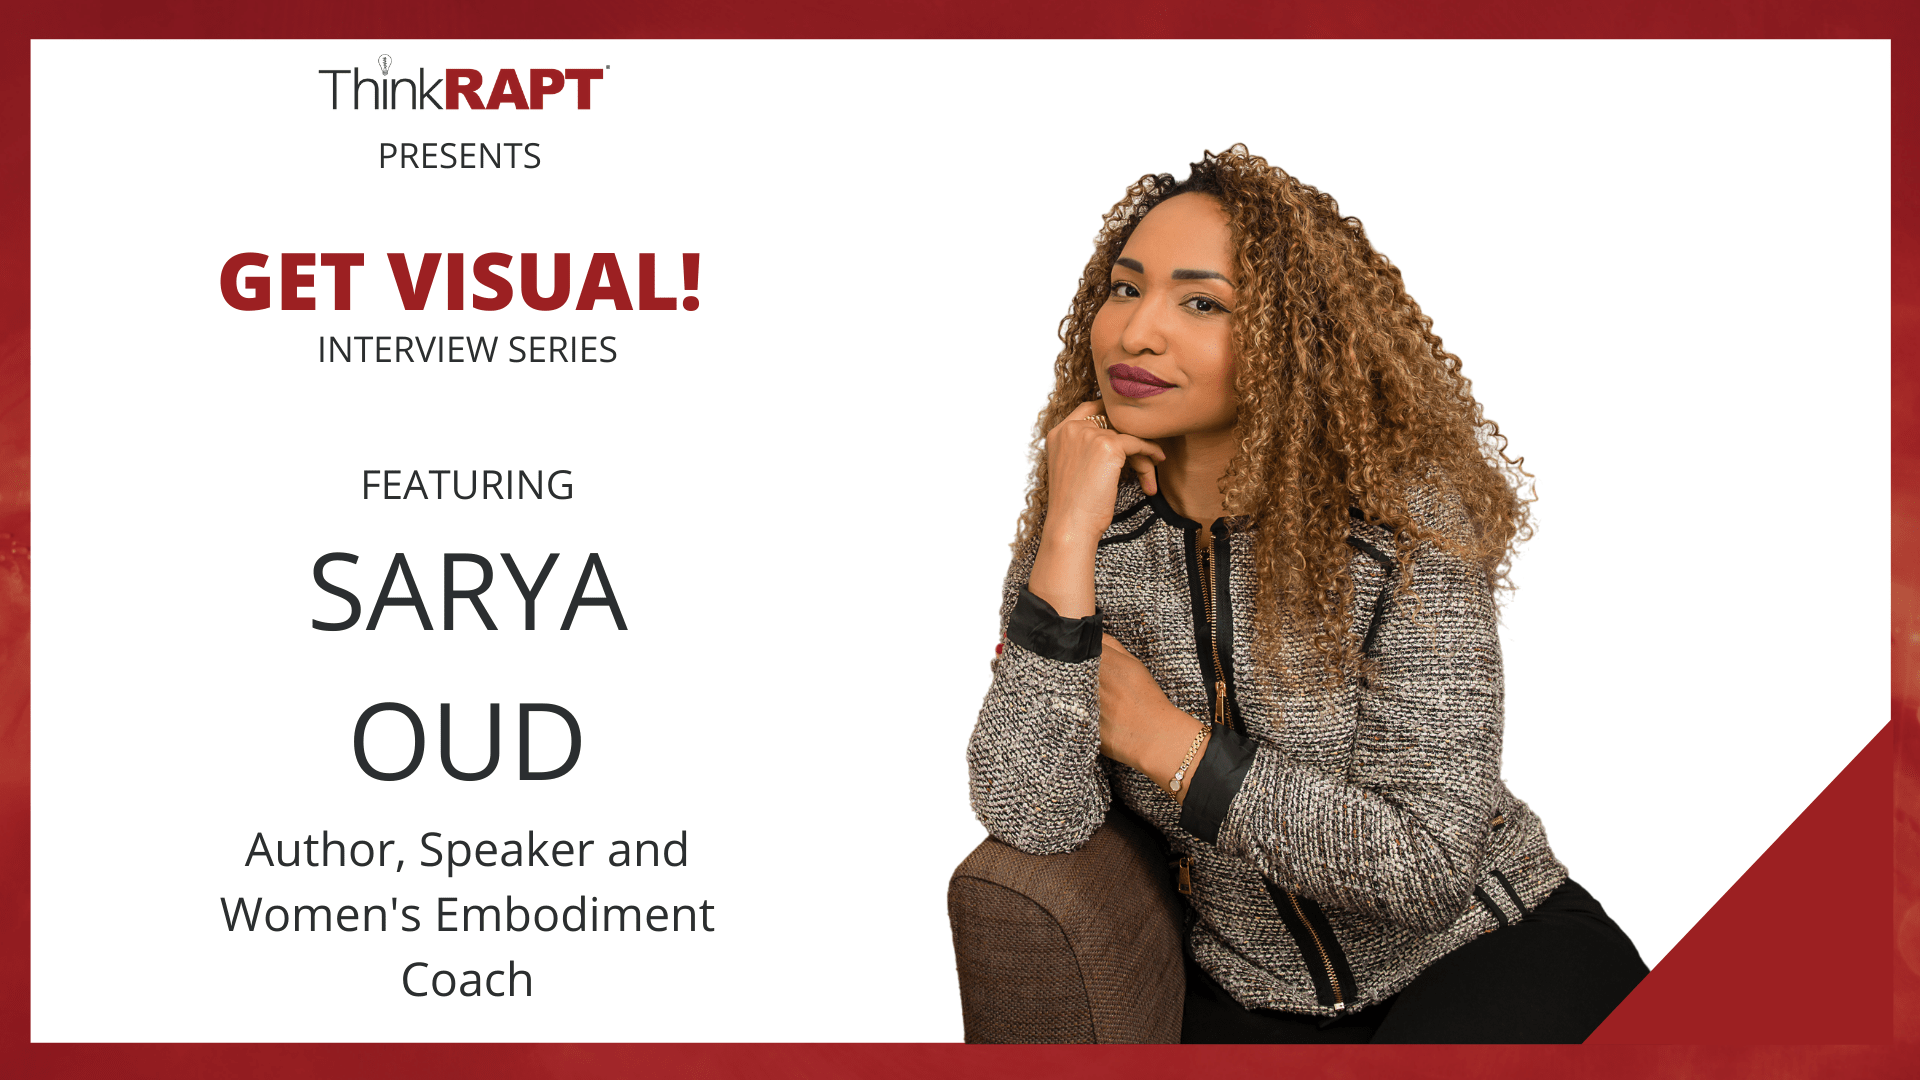 A curly woman sitting on a couch, wearing a blazer and smiling at the camera.  Text says Think RAPT presents Get Visual Interview Series featuring Sarya Oud